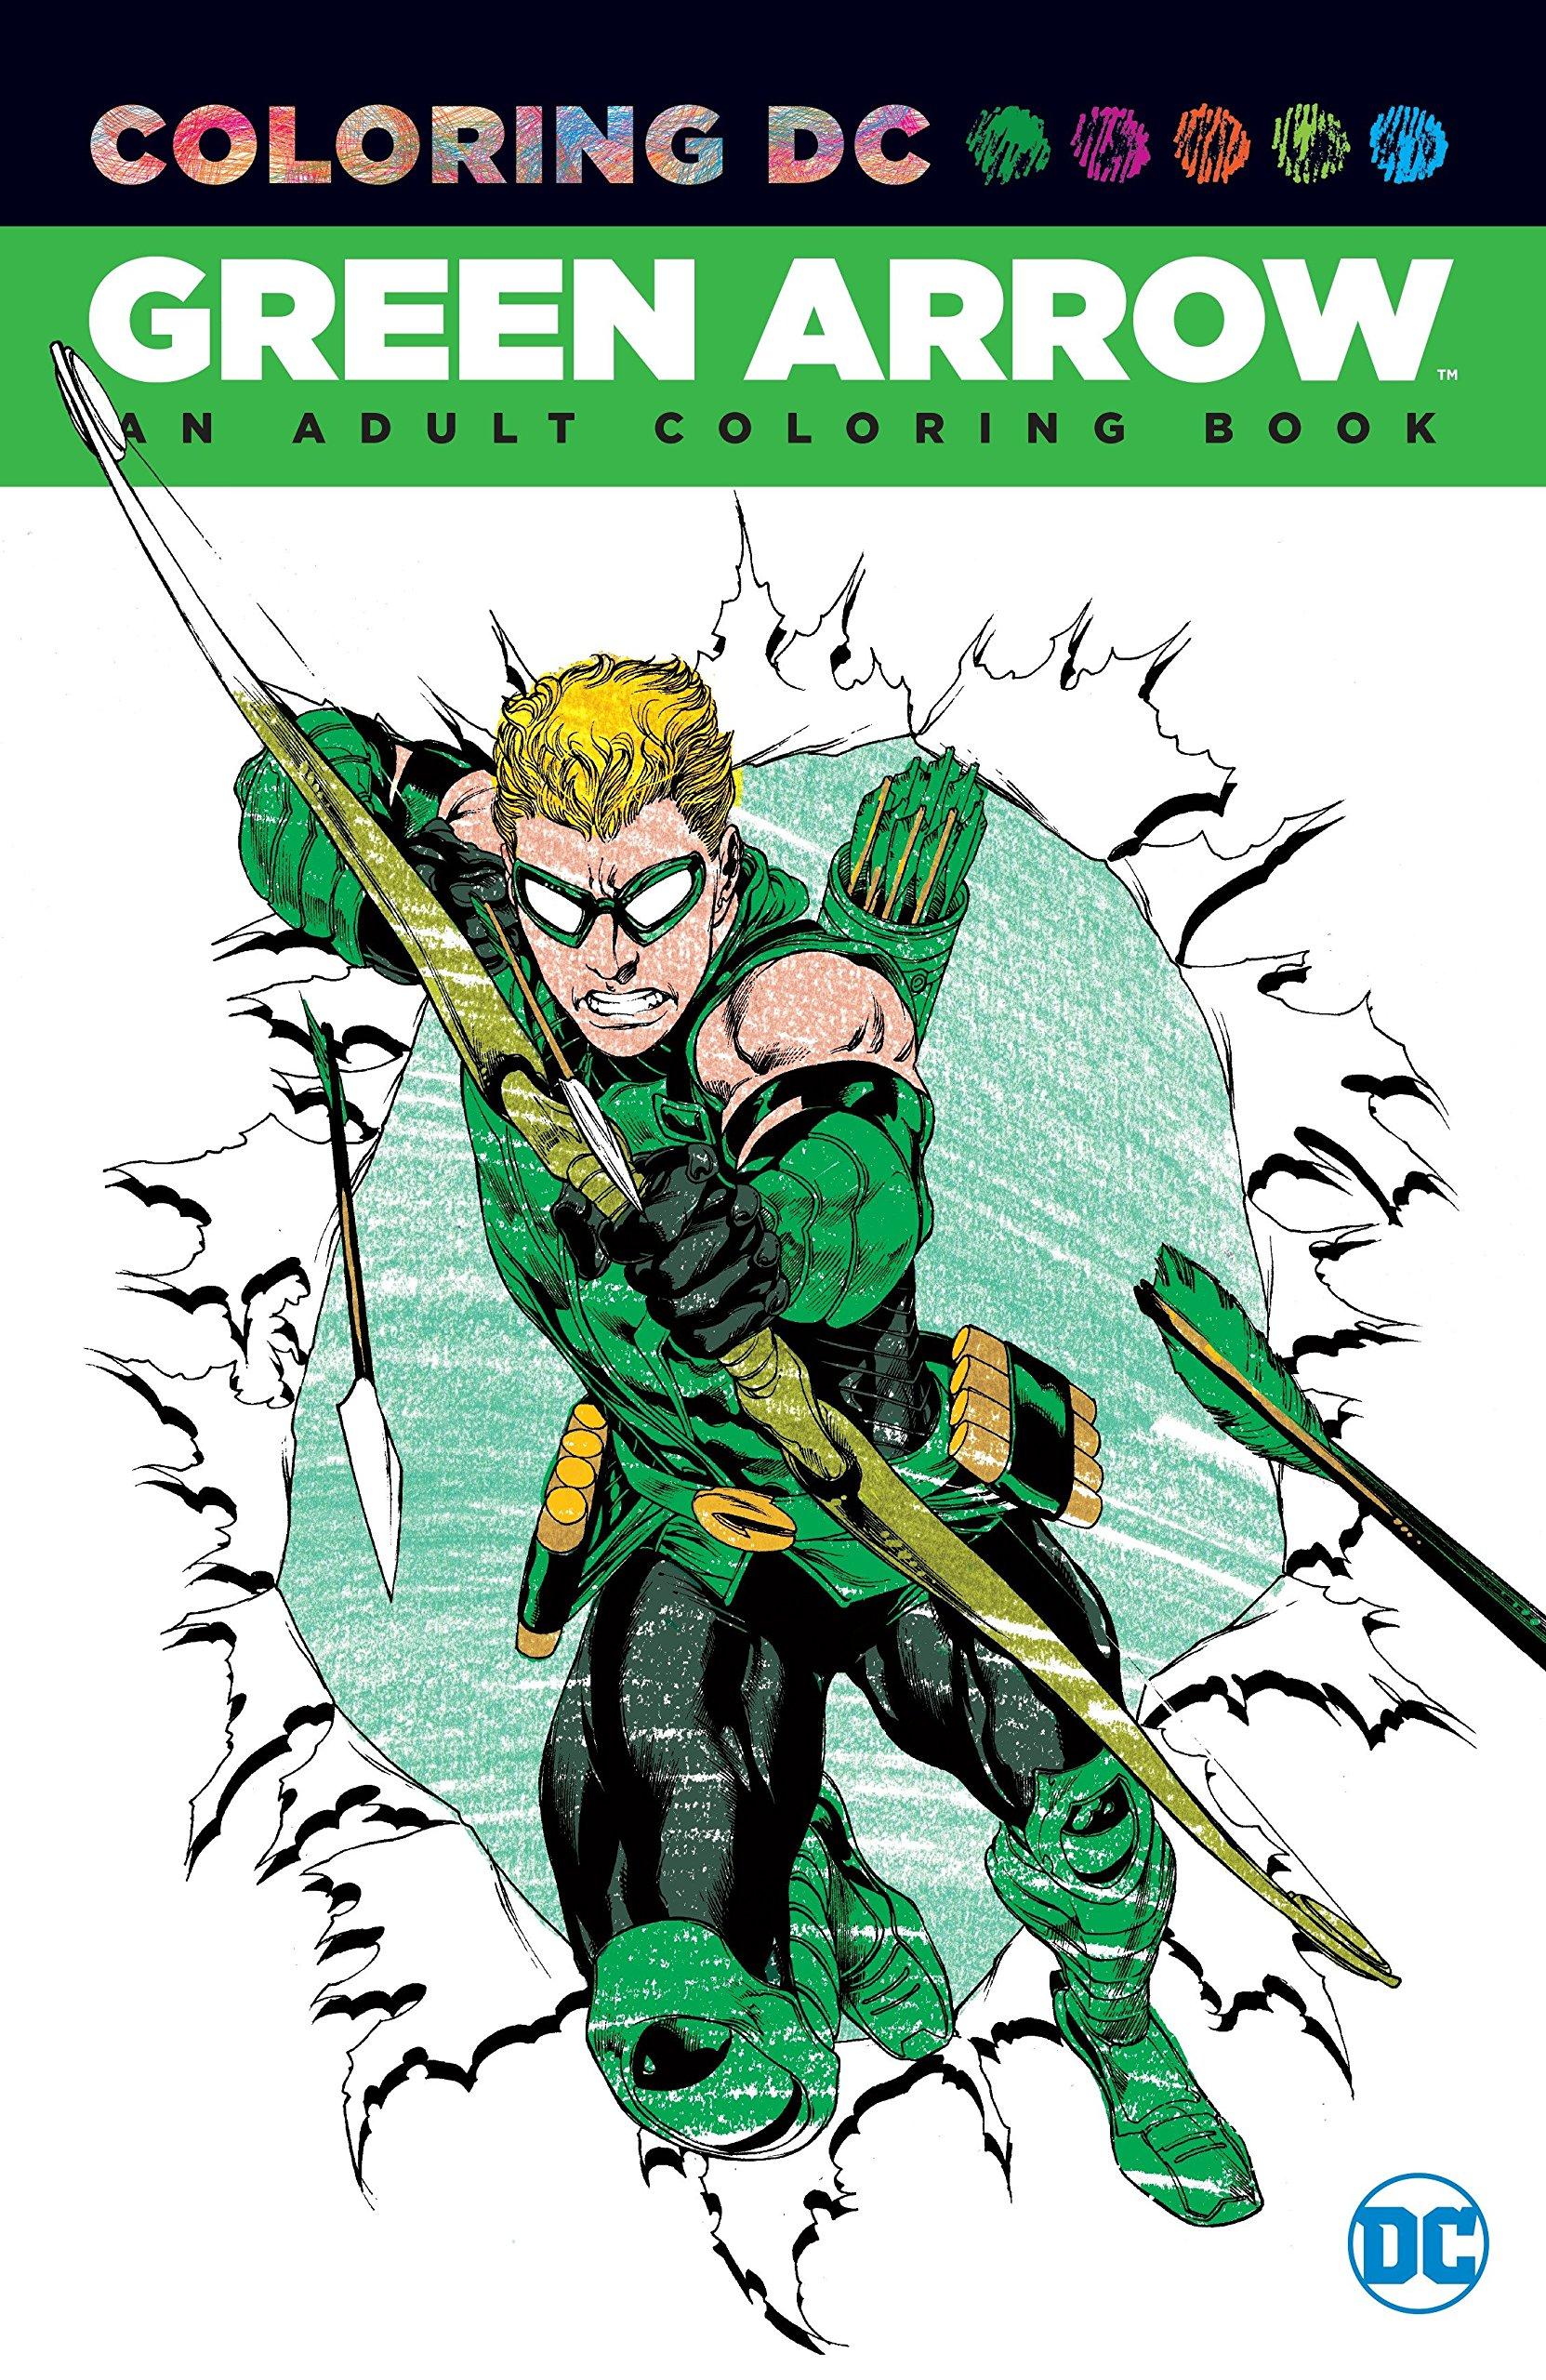 Green Arrow: An Adult Coloring Book (Coloring DC)